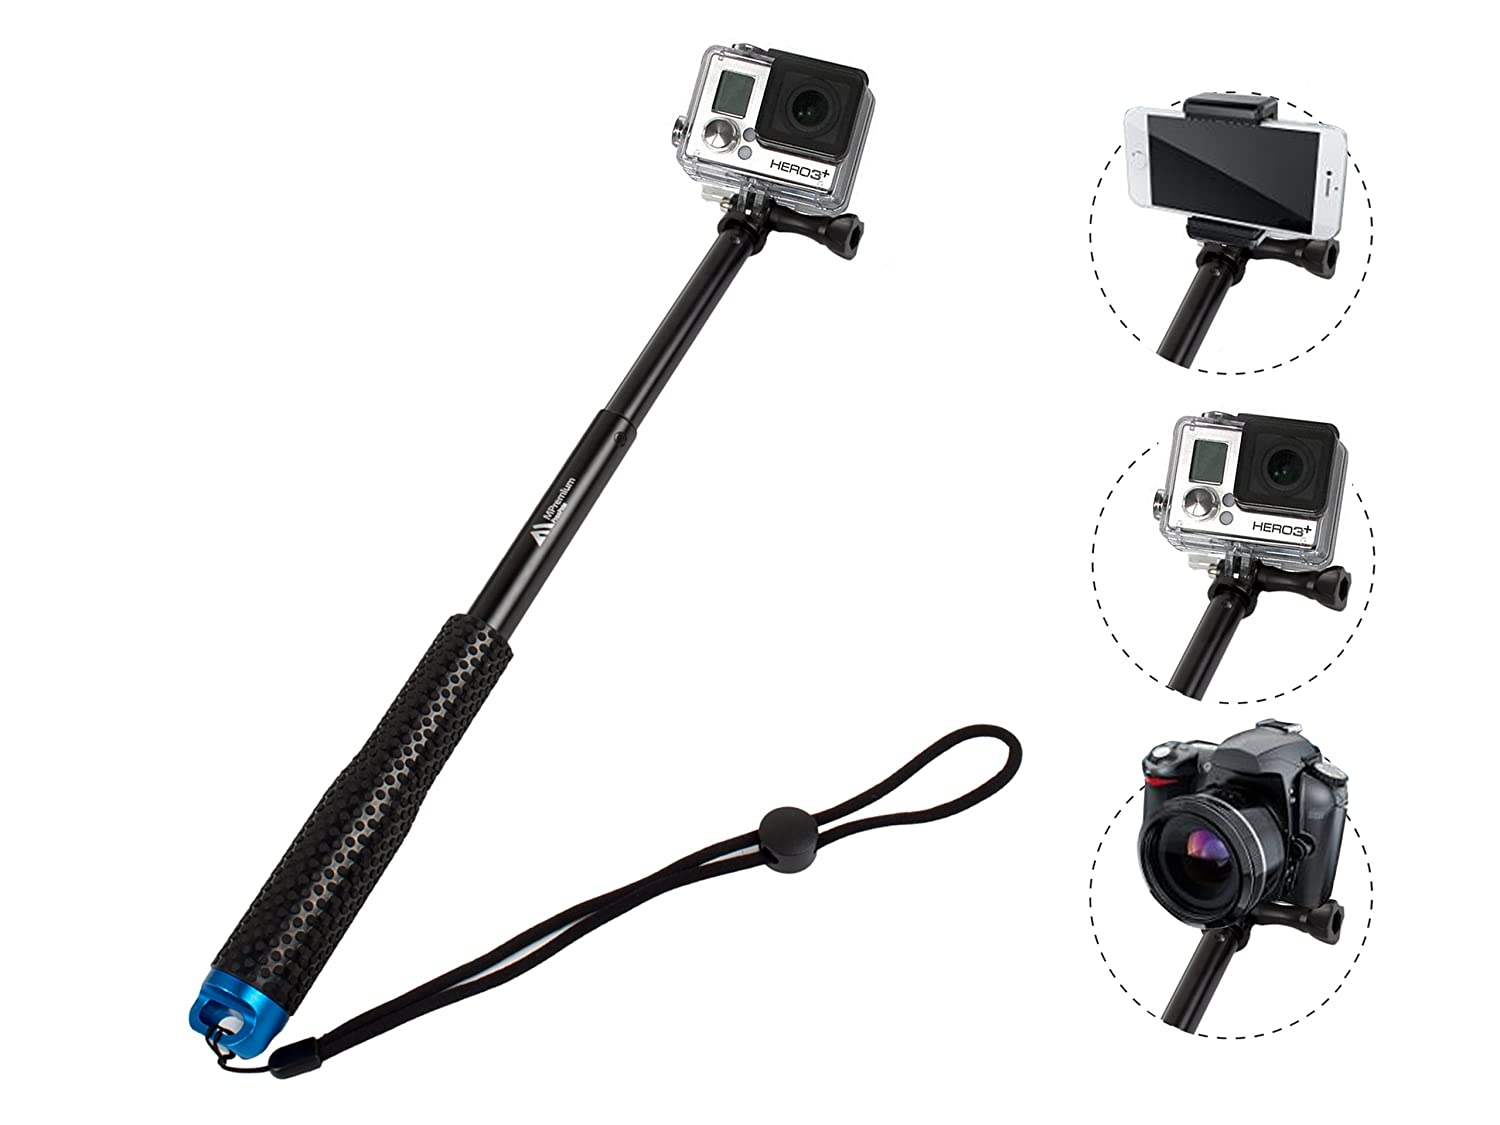 """ProsPole Extendable Pole an Aluminium Telescopic Monopod Extension & adjustable Selfie Stick for Gopro Hero 4 Session Black Silver Hero 2 3 3+ 4 and other Action Cameras (Blue 37"""")"""